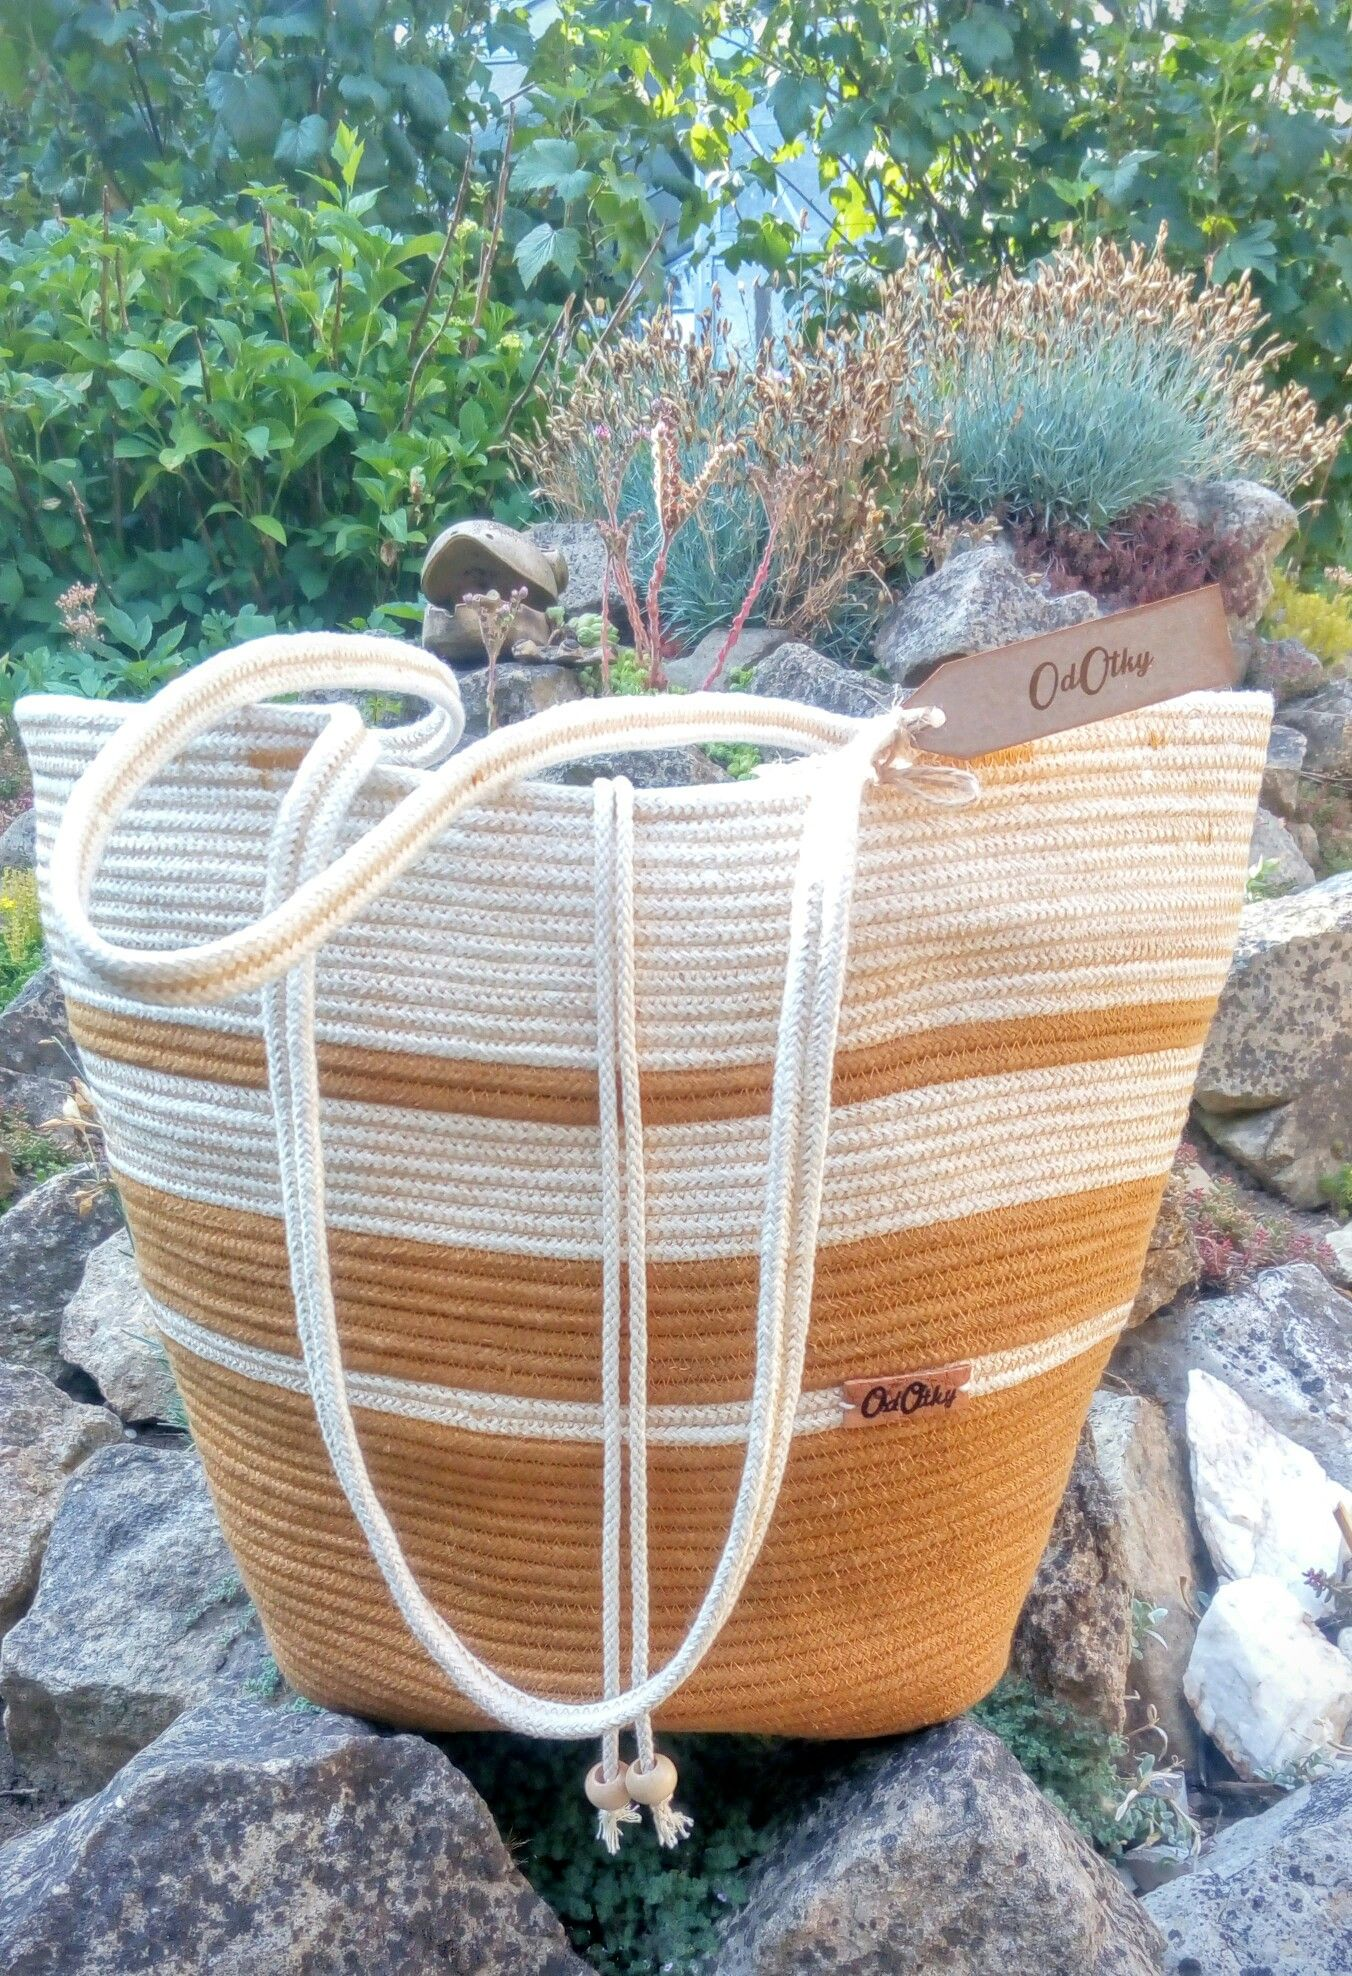 Rope Basket, Summer Bags, Crocheted Bags, Twine, Pouches, Wallets, Totes,